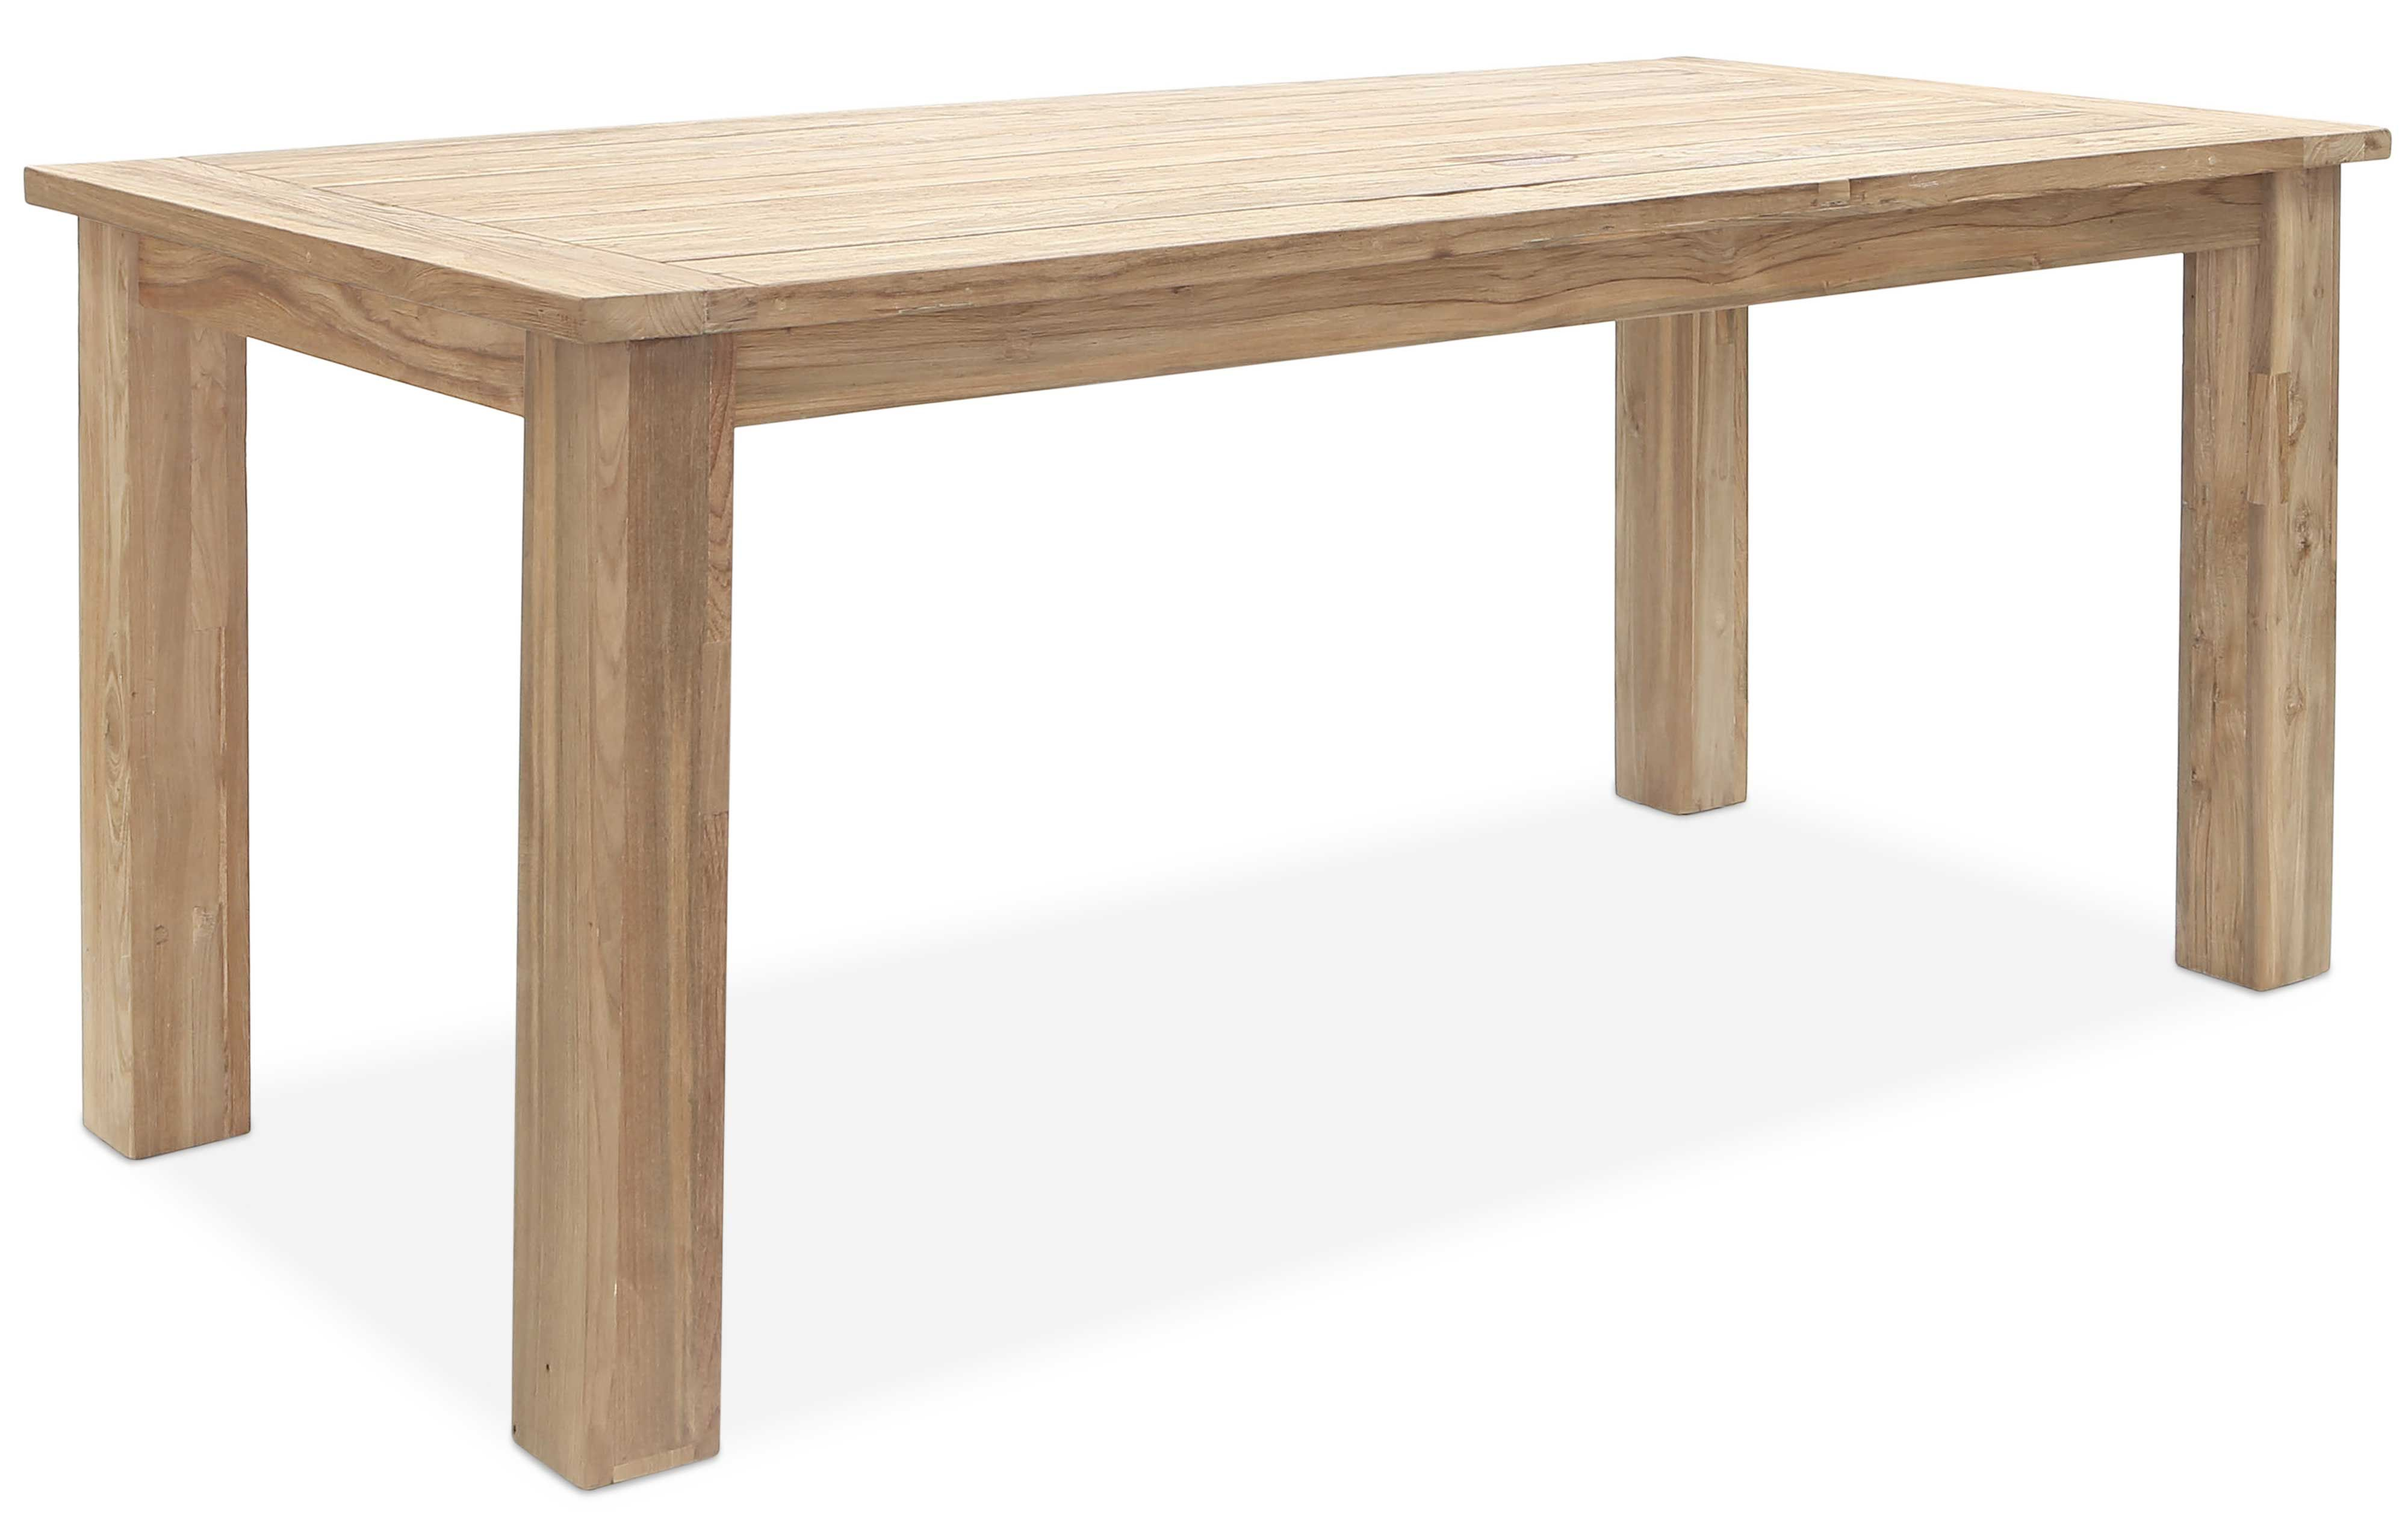 Table de jardin Oxford 180cm